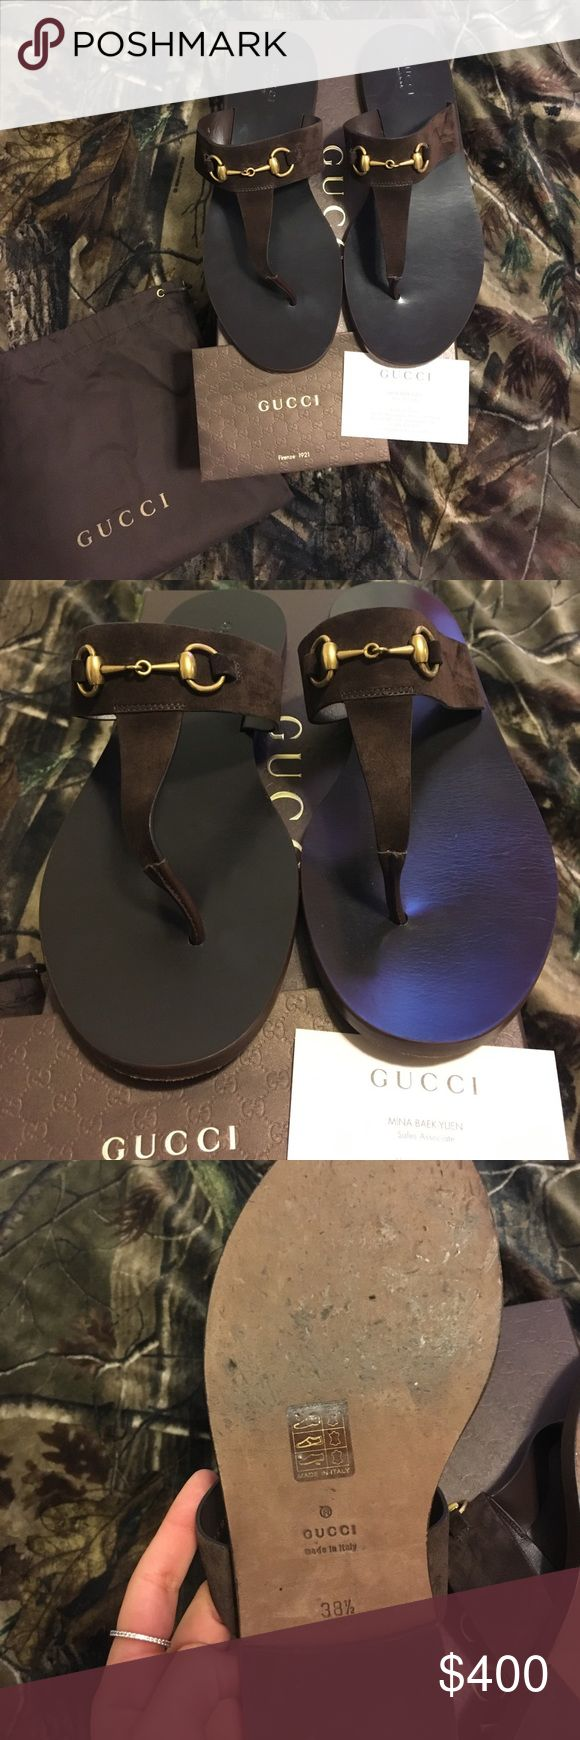 Authentic Gucci Horse-bit Sandals Like new!!! Only worn once! Comes with box, Gucci tissue paper, and dustbag. Purchased from Gucci store at Ala Moana in Honolulu, HI. These are dark brown with gold signature Gucci horse-bit hardware. Extremely beautiful sandals. Size 38.5 EU or 8.5 women's. I paid $495 plus tax! Guaranteed authentic. Will take $350 through 🅿️🅿️ Gucci Shoes Sandals